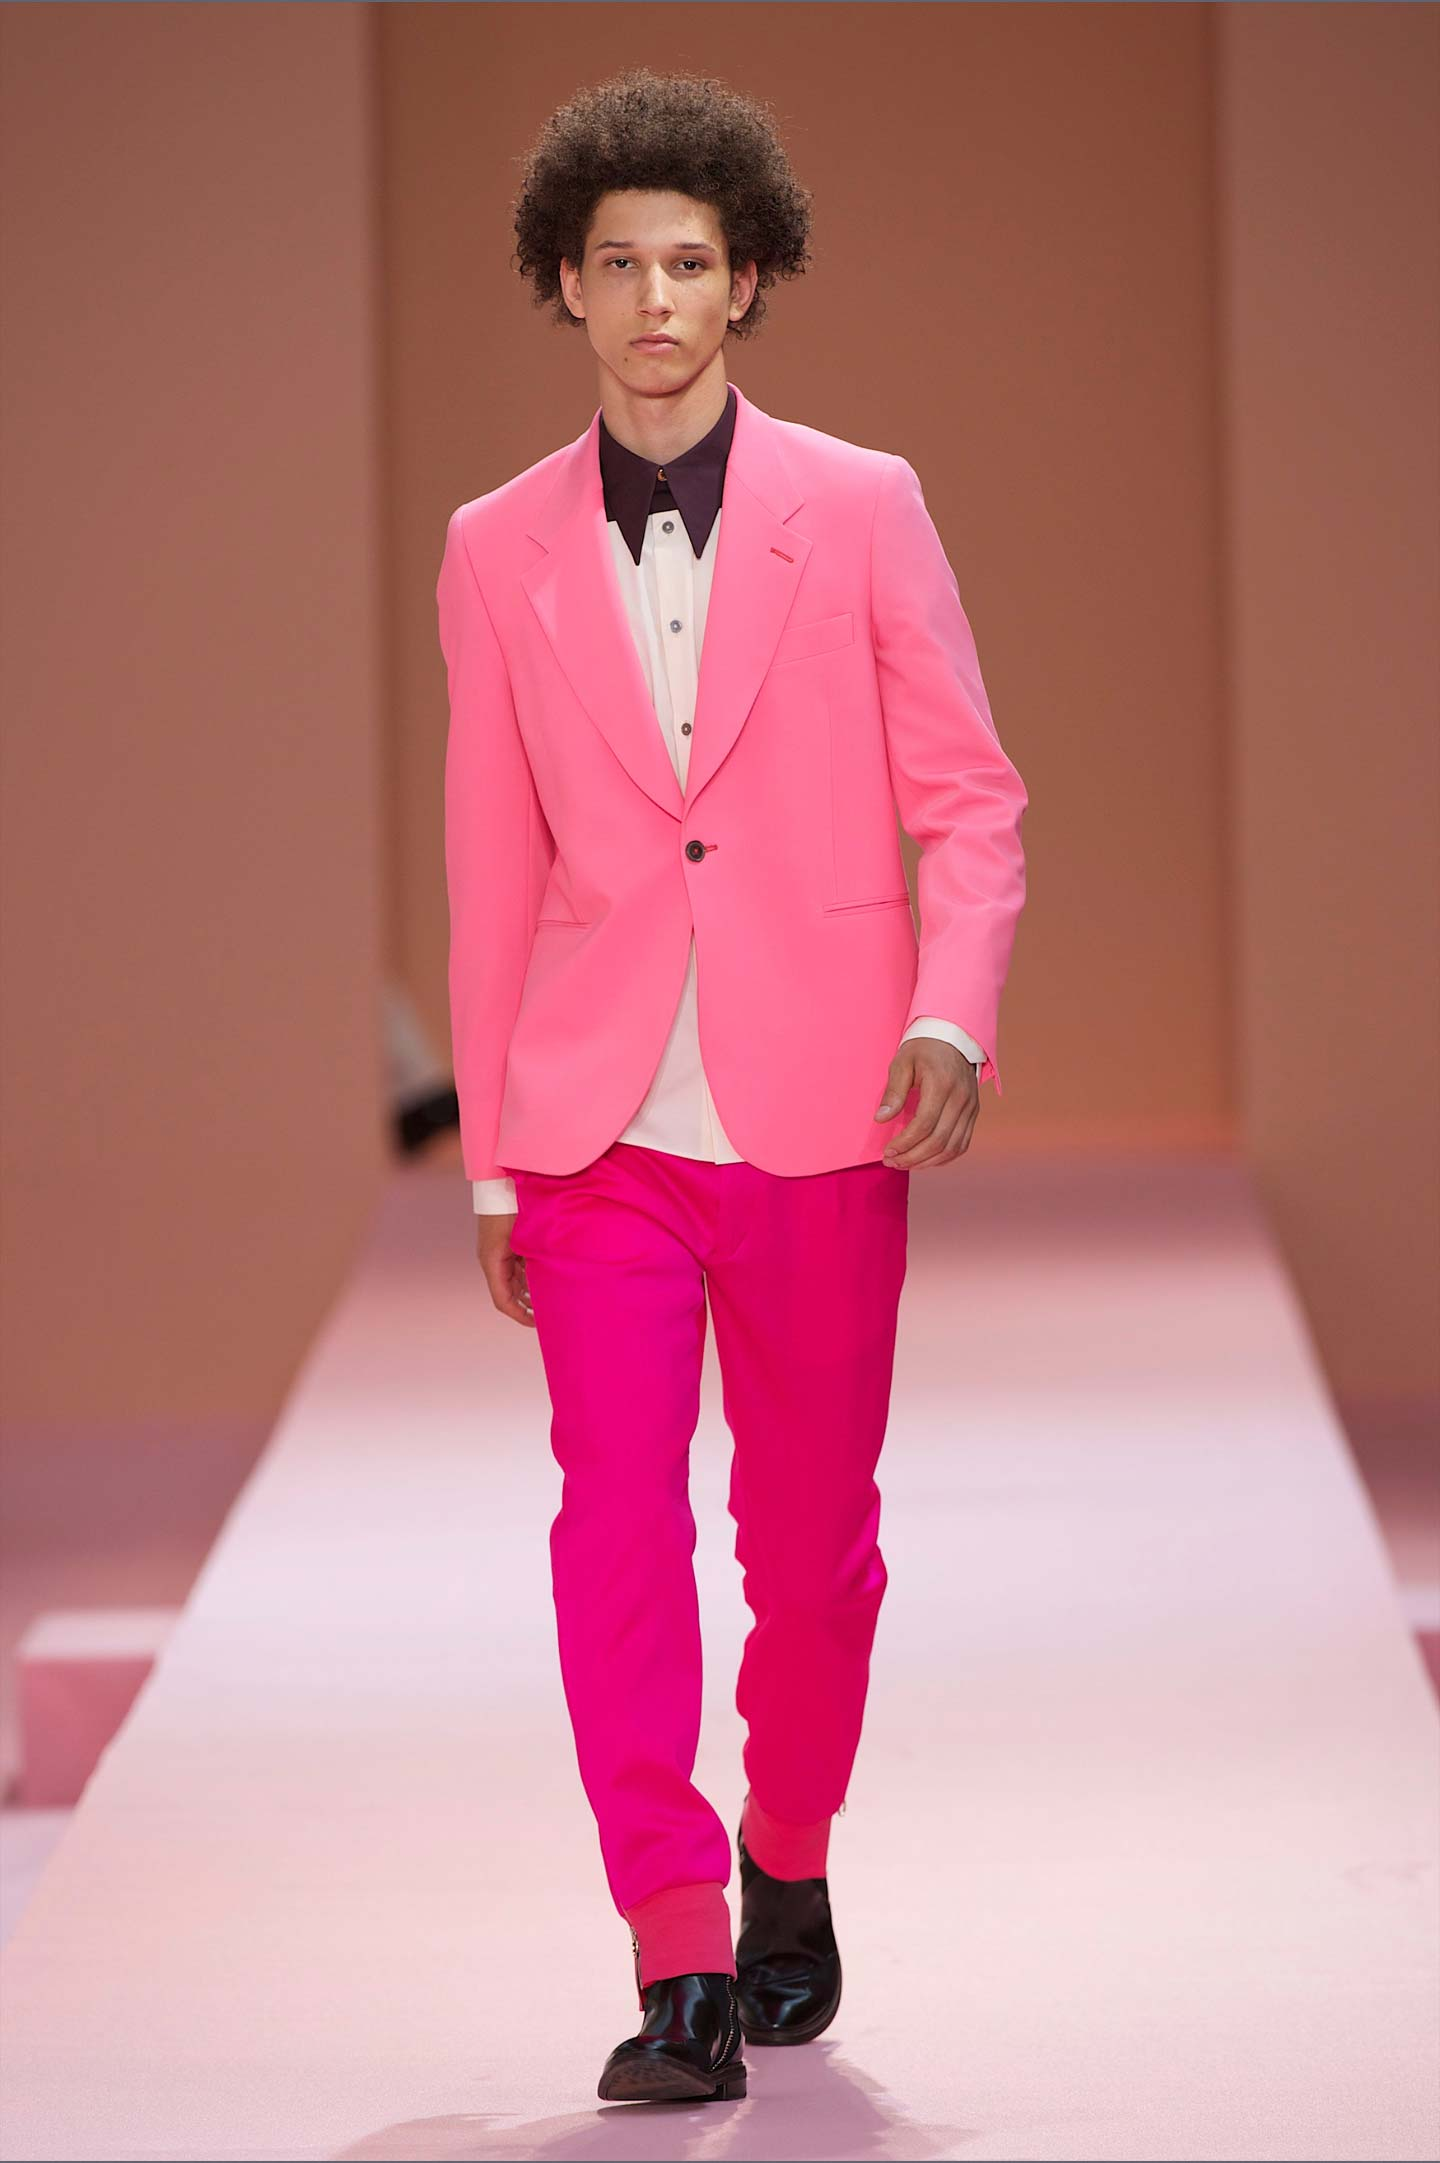 Paul Smith: Spring Summer '14 Menswear Collection